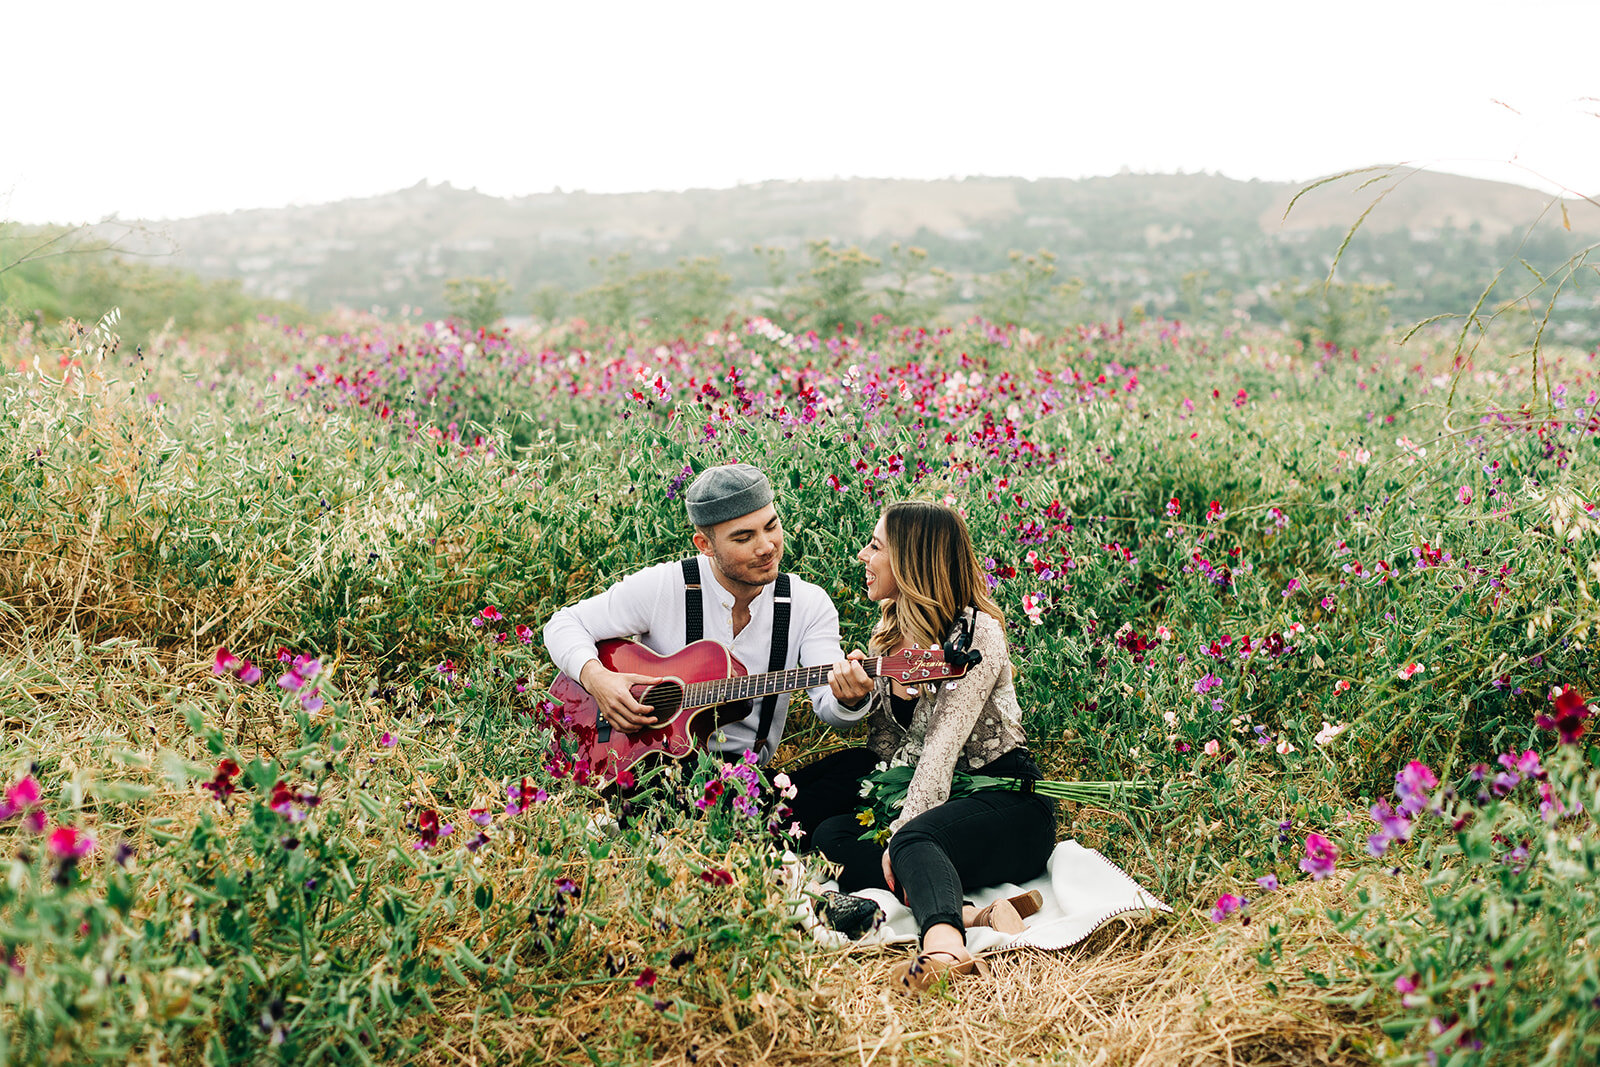 southern-california-wedding-photographer-sweet-pea-fields-engagement-photos_52.jpg